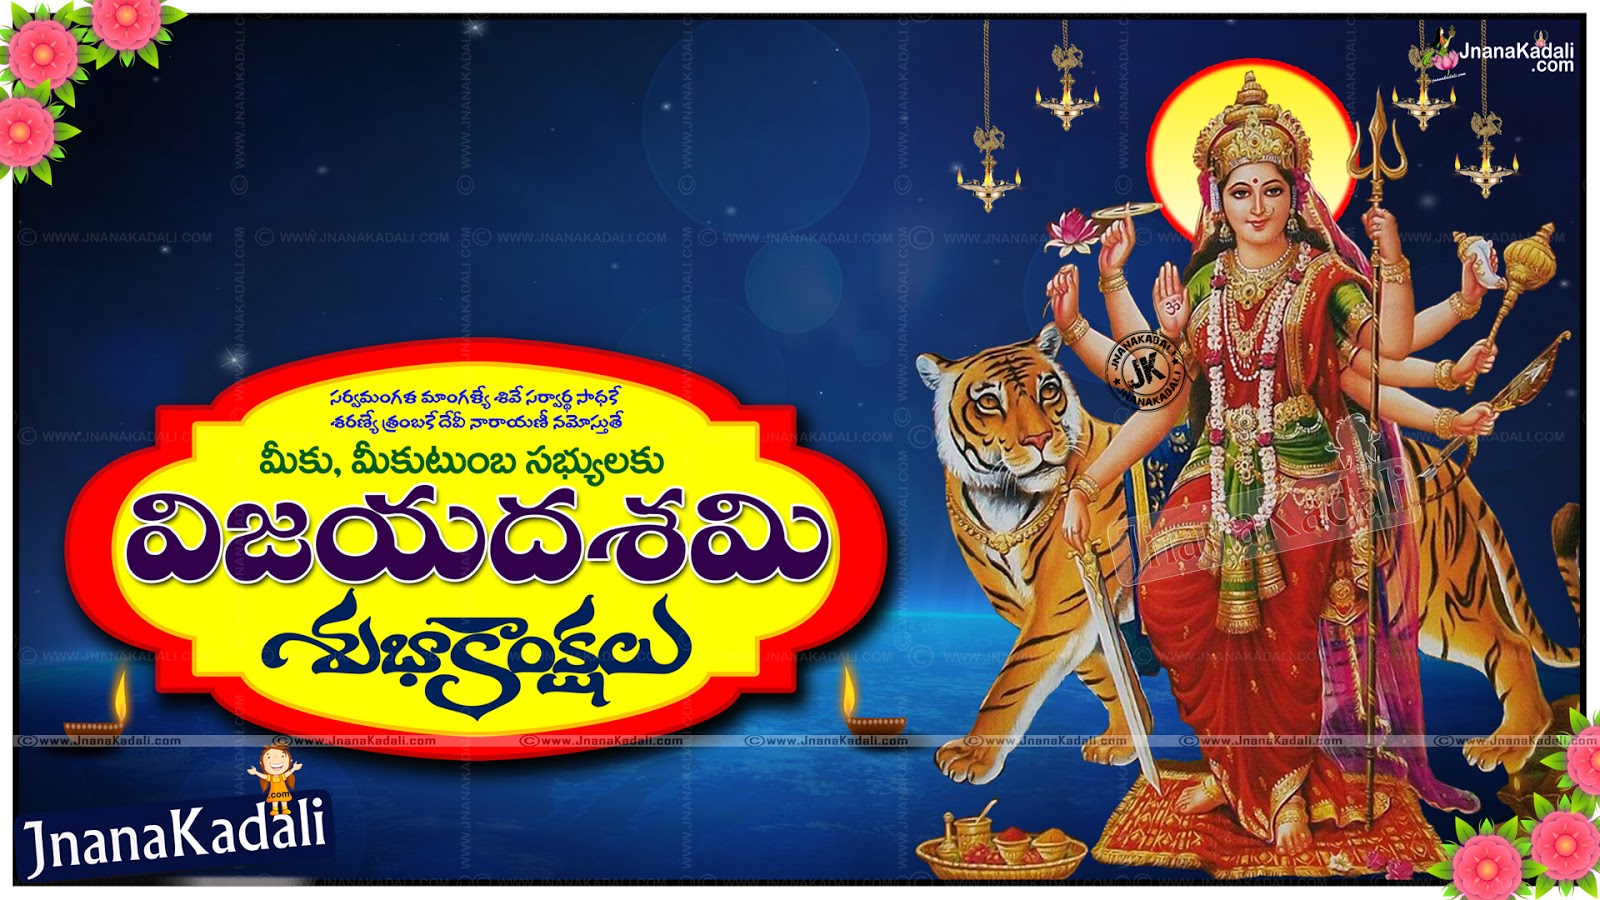 Vijayadasami telug cancer treatment happy dasara telugu wishes quotations here m4hsunfo